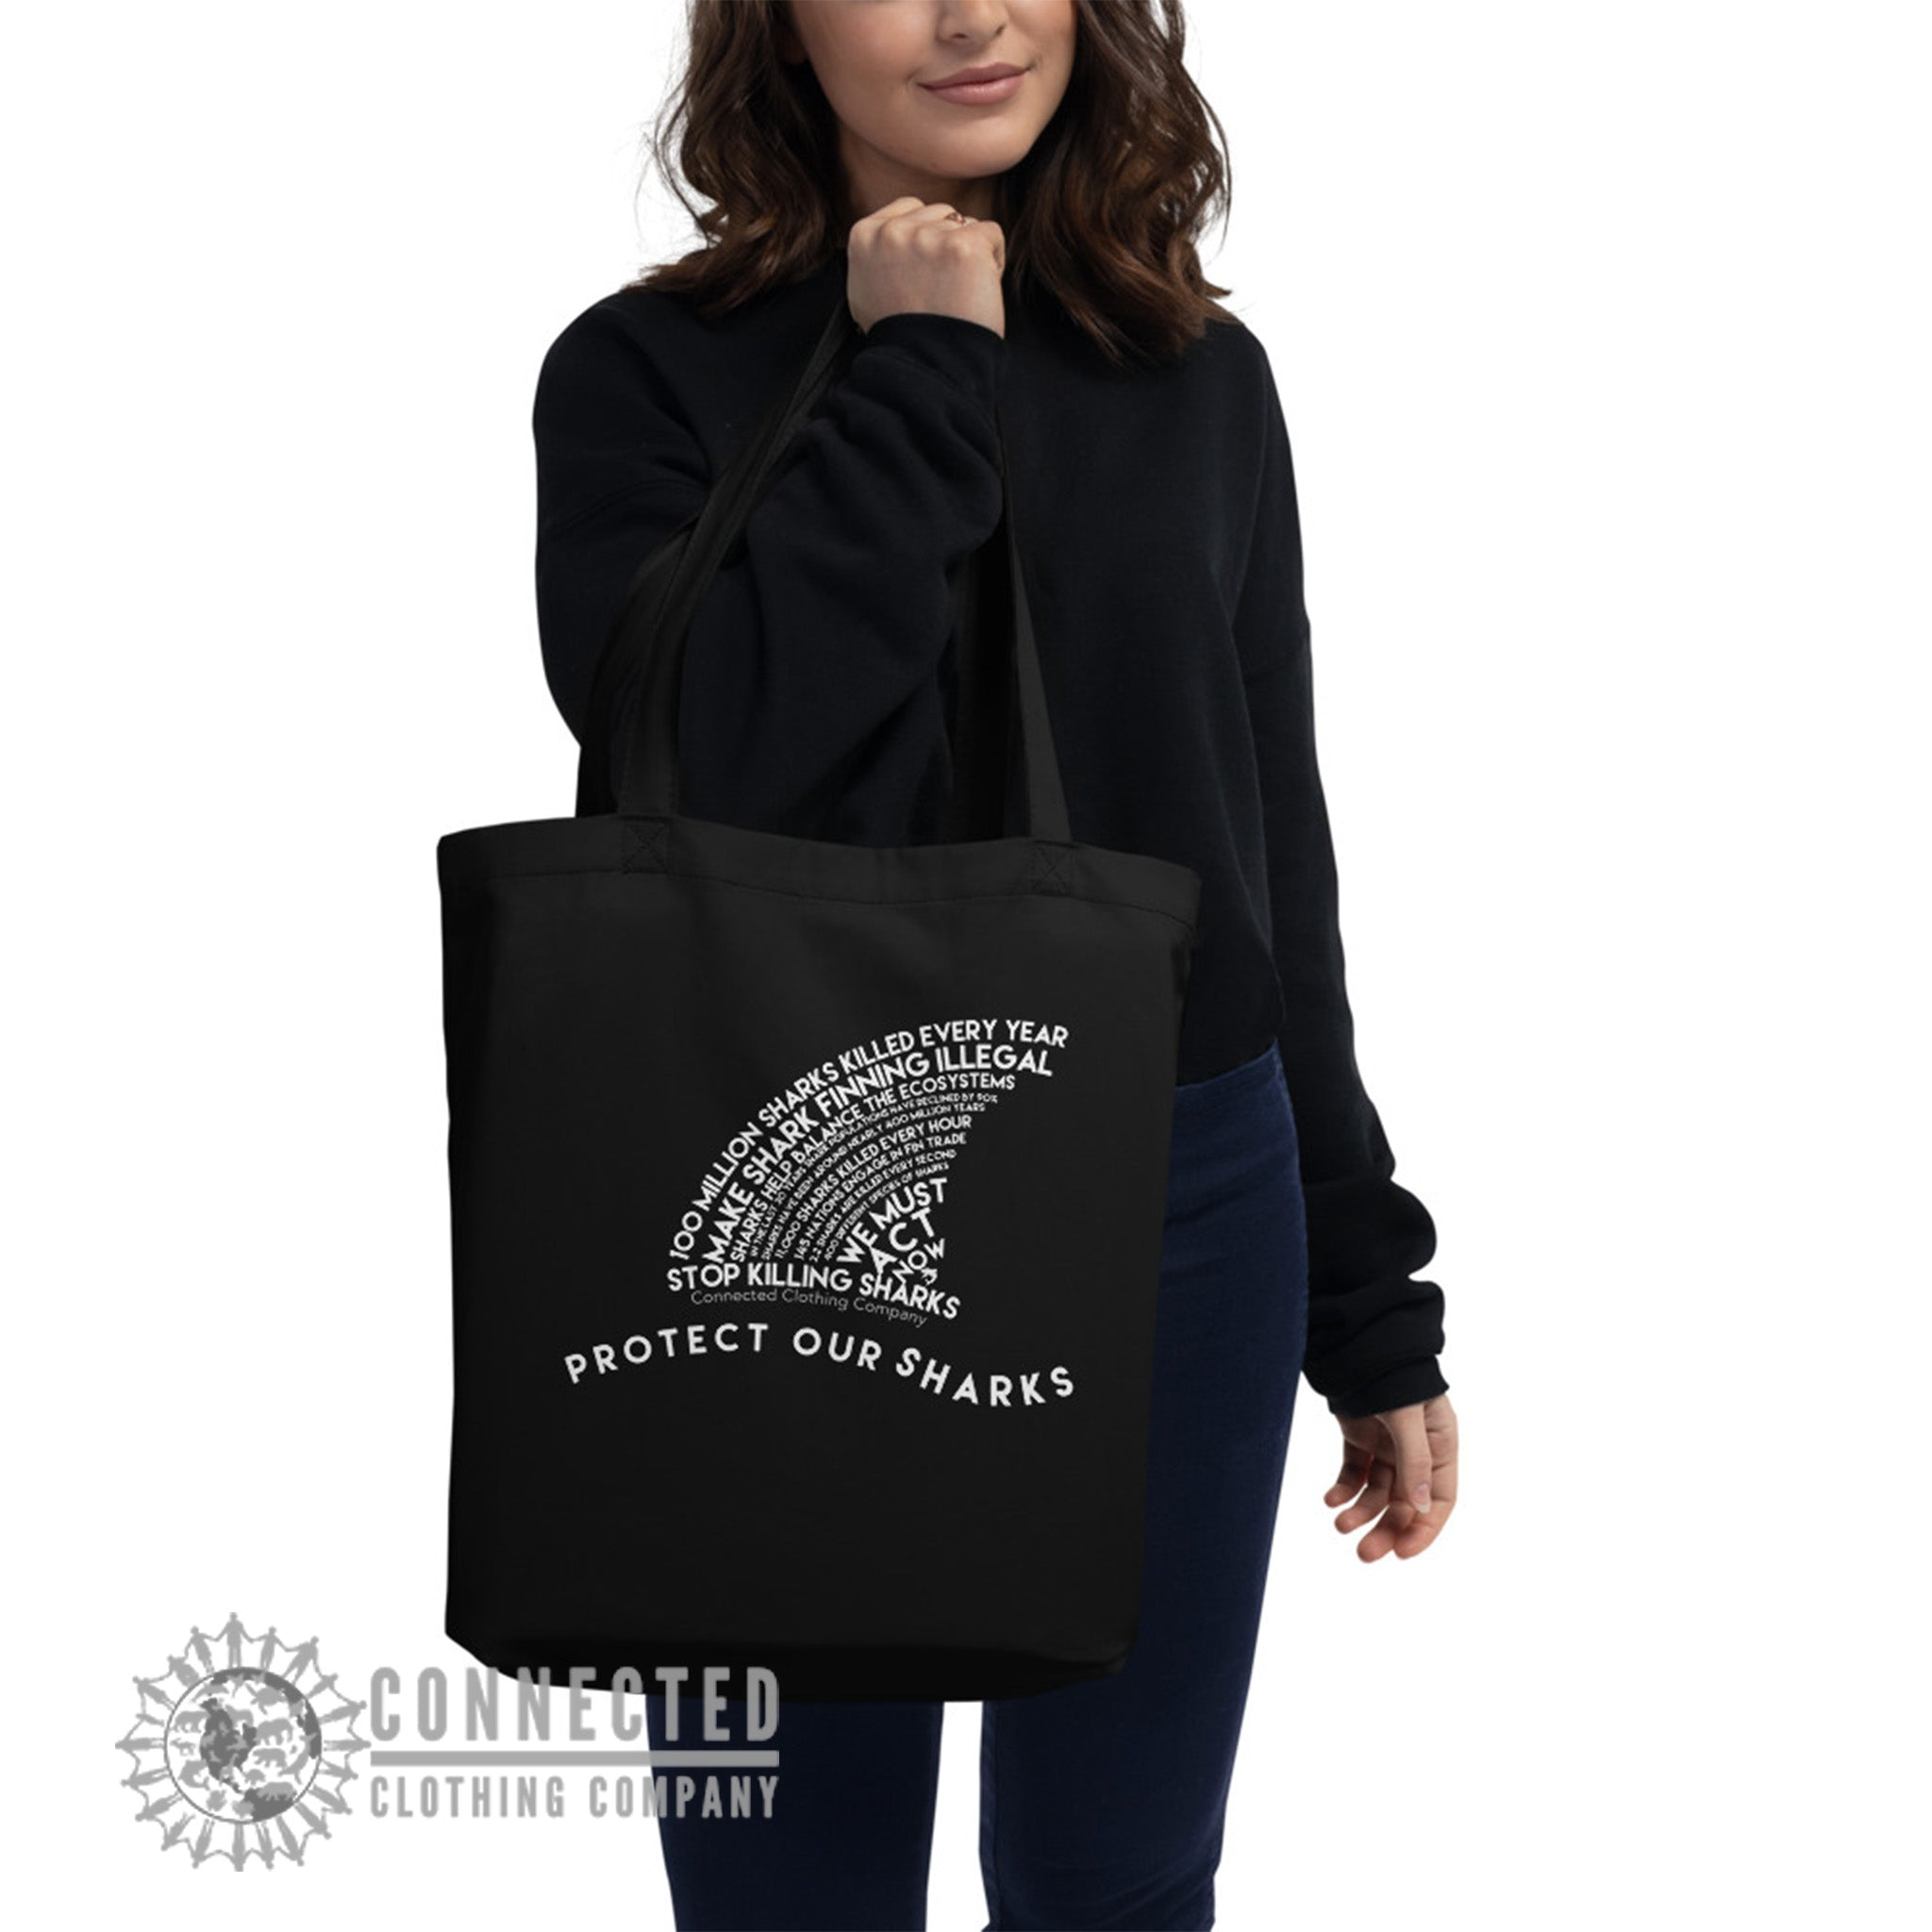 PROTECT OUR OCEANS Organic Cotton Eco Tote Bag